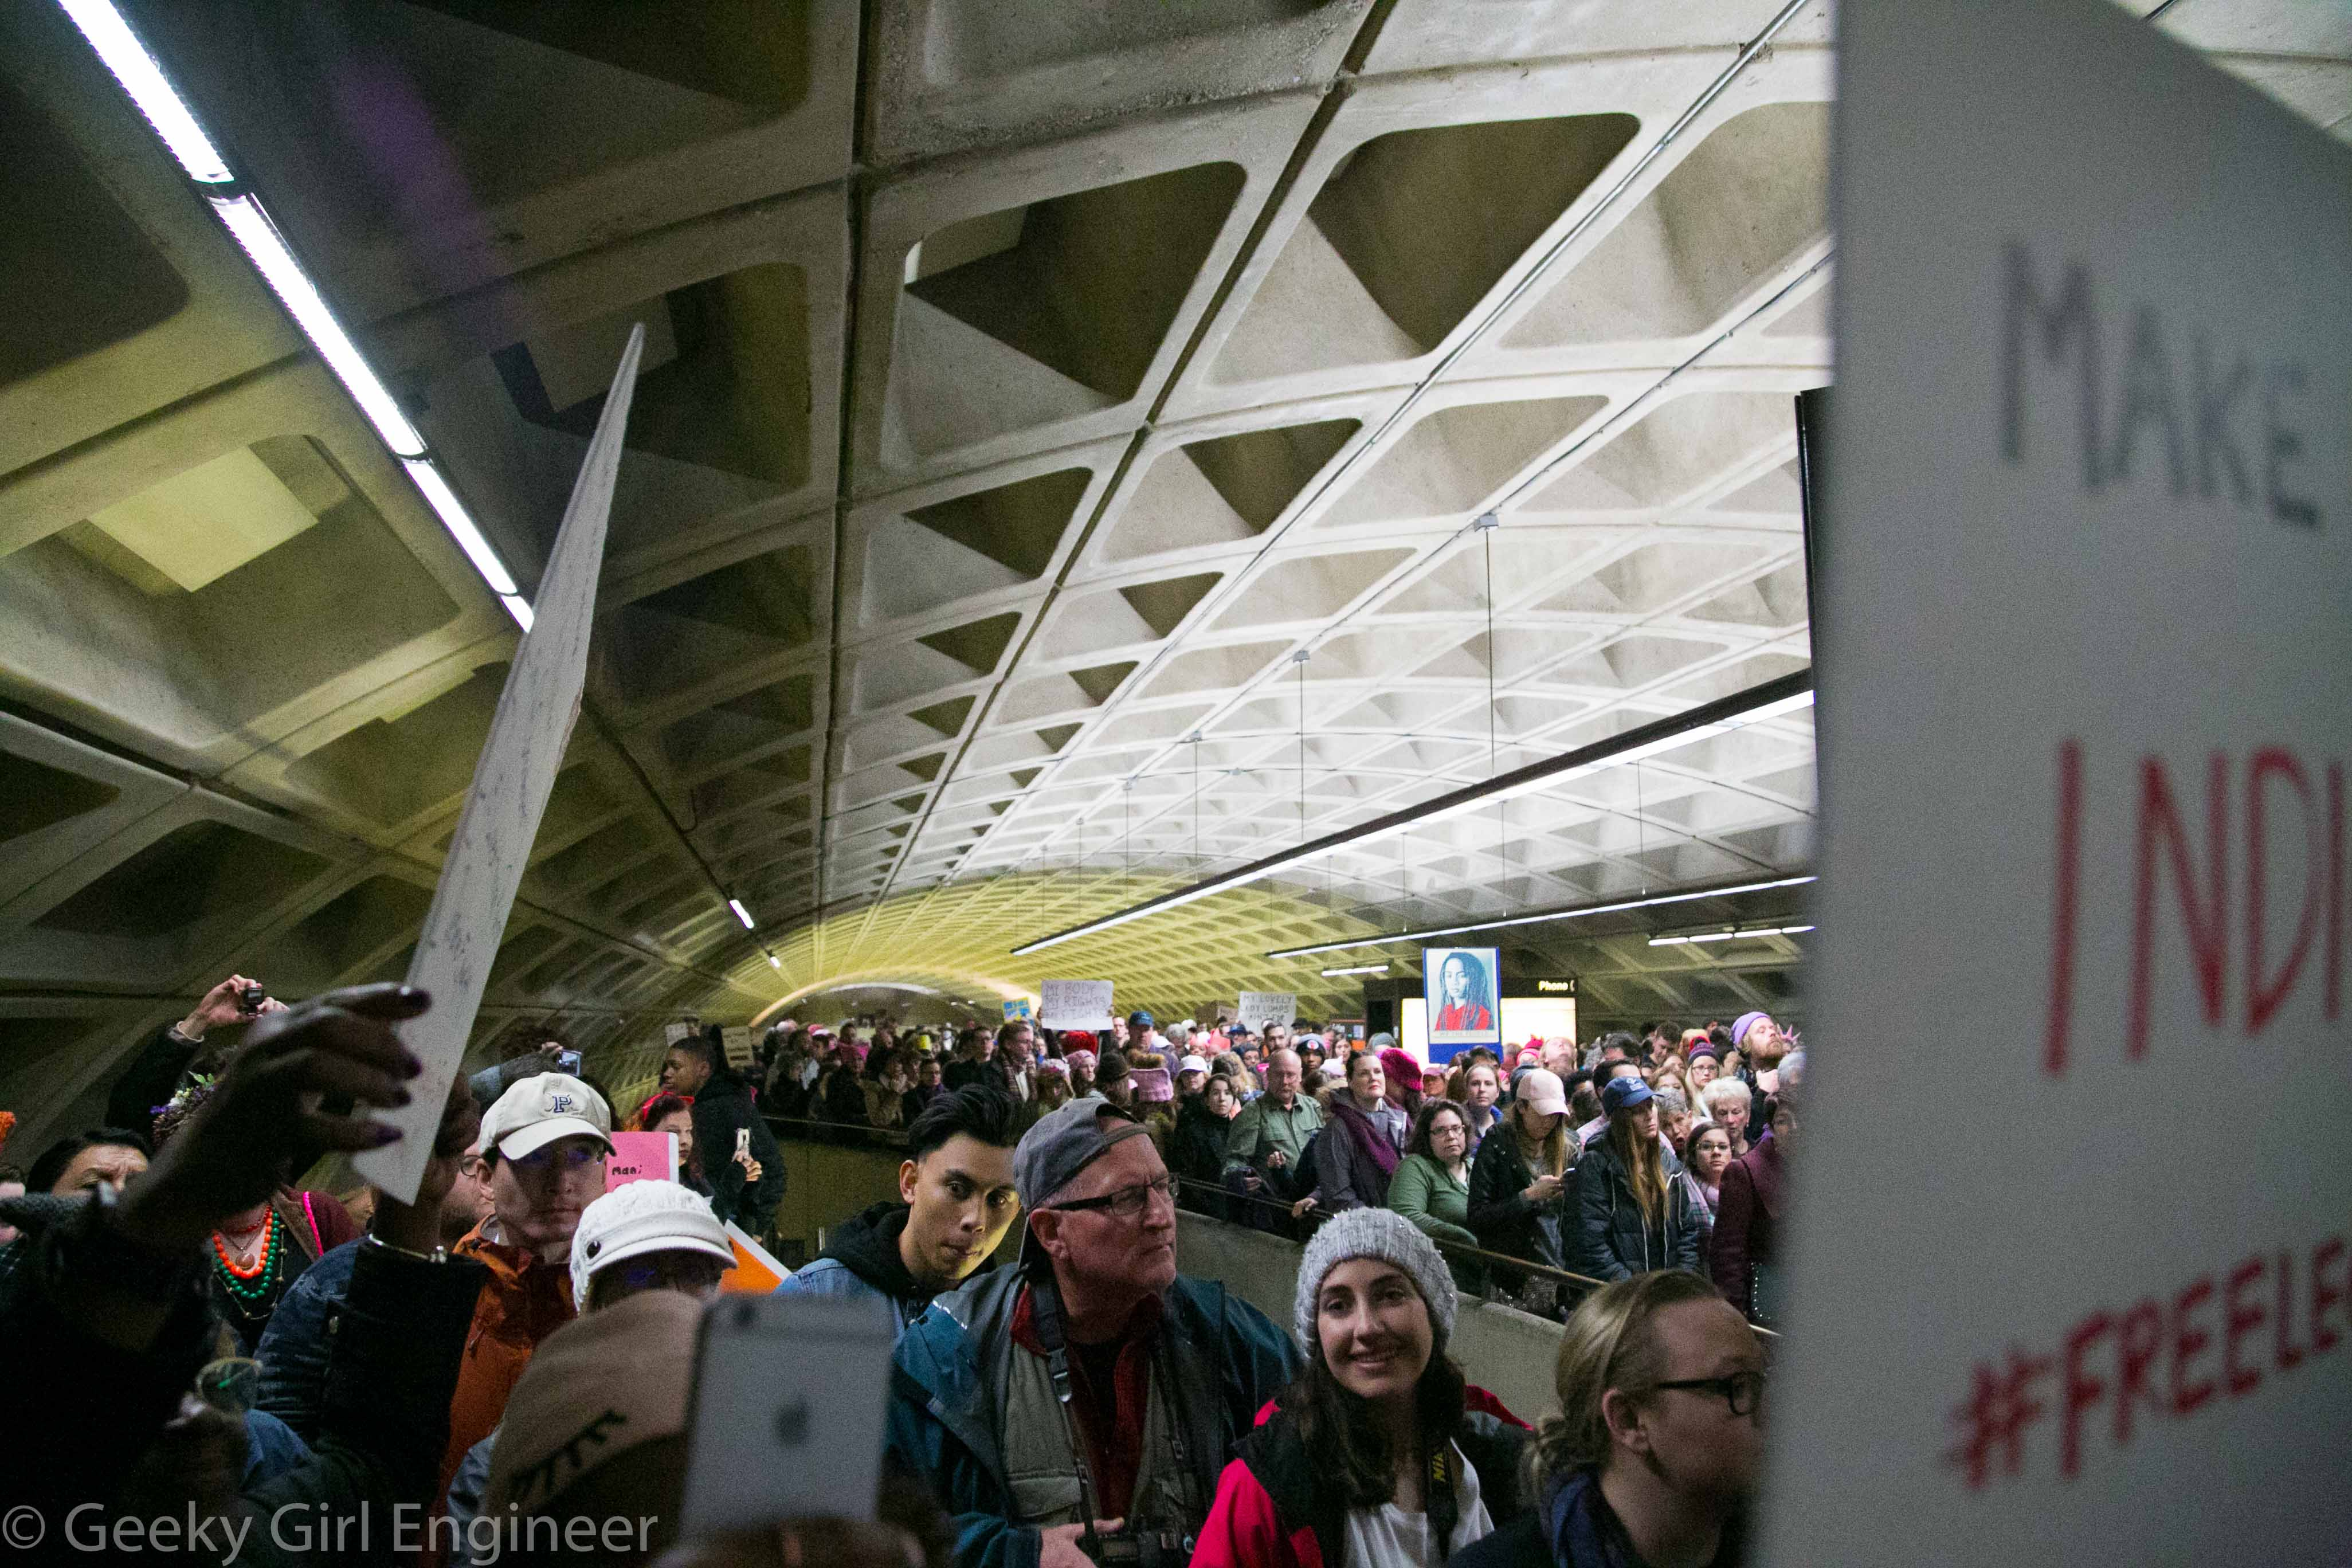 Trying to get out of L'Enfant Metro station